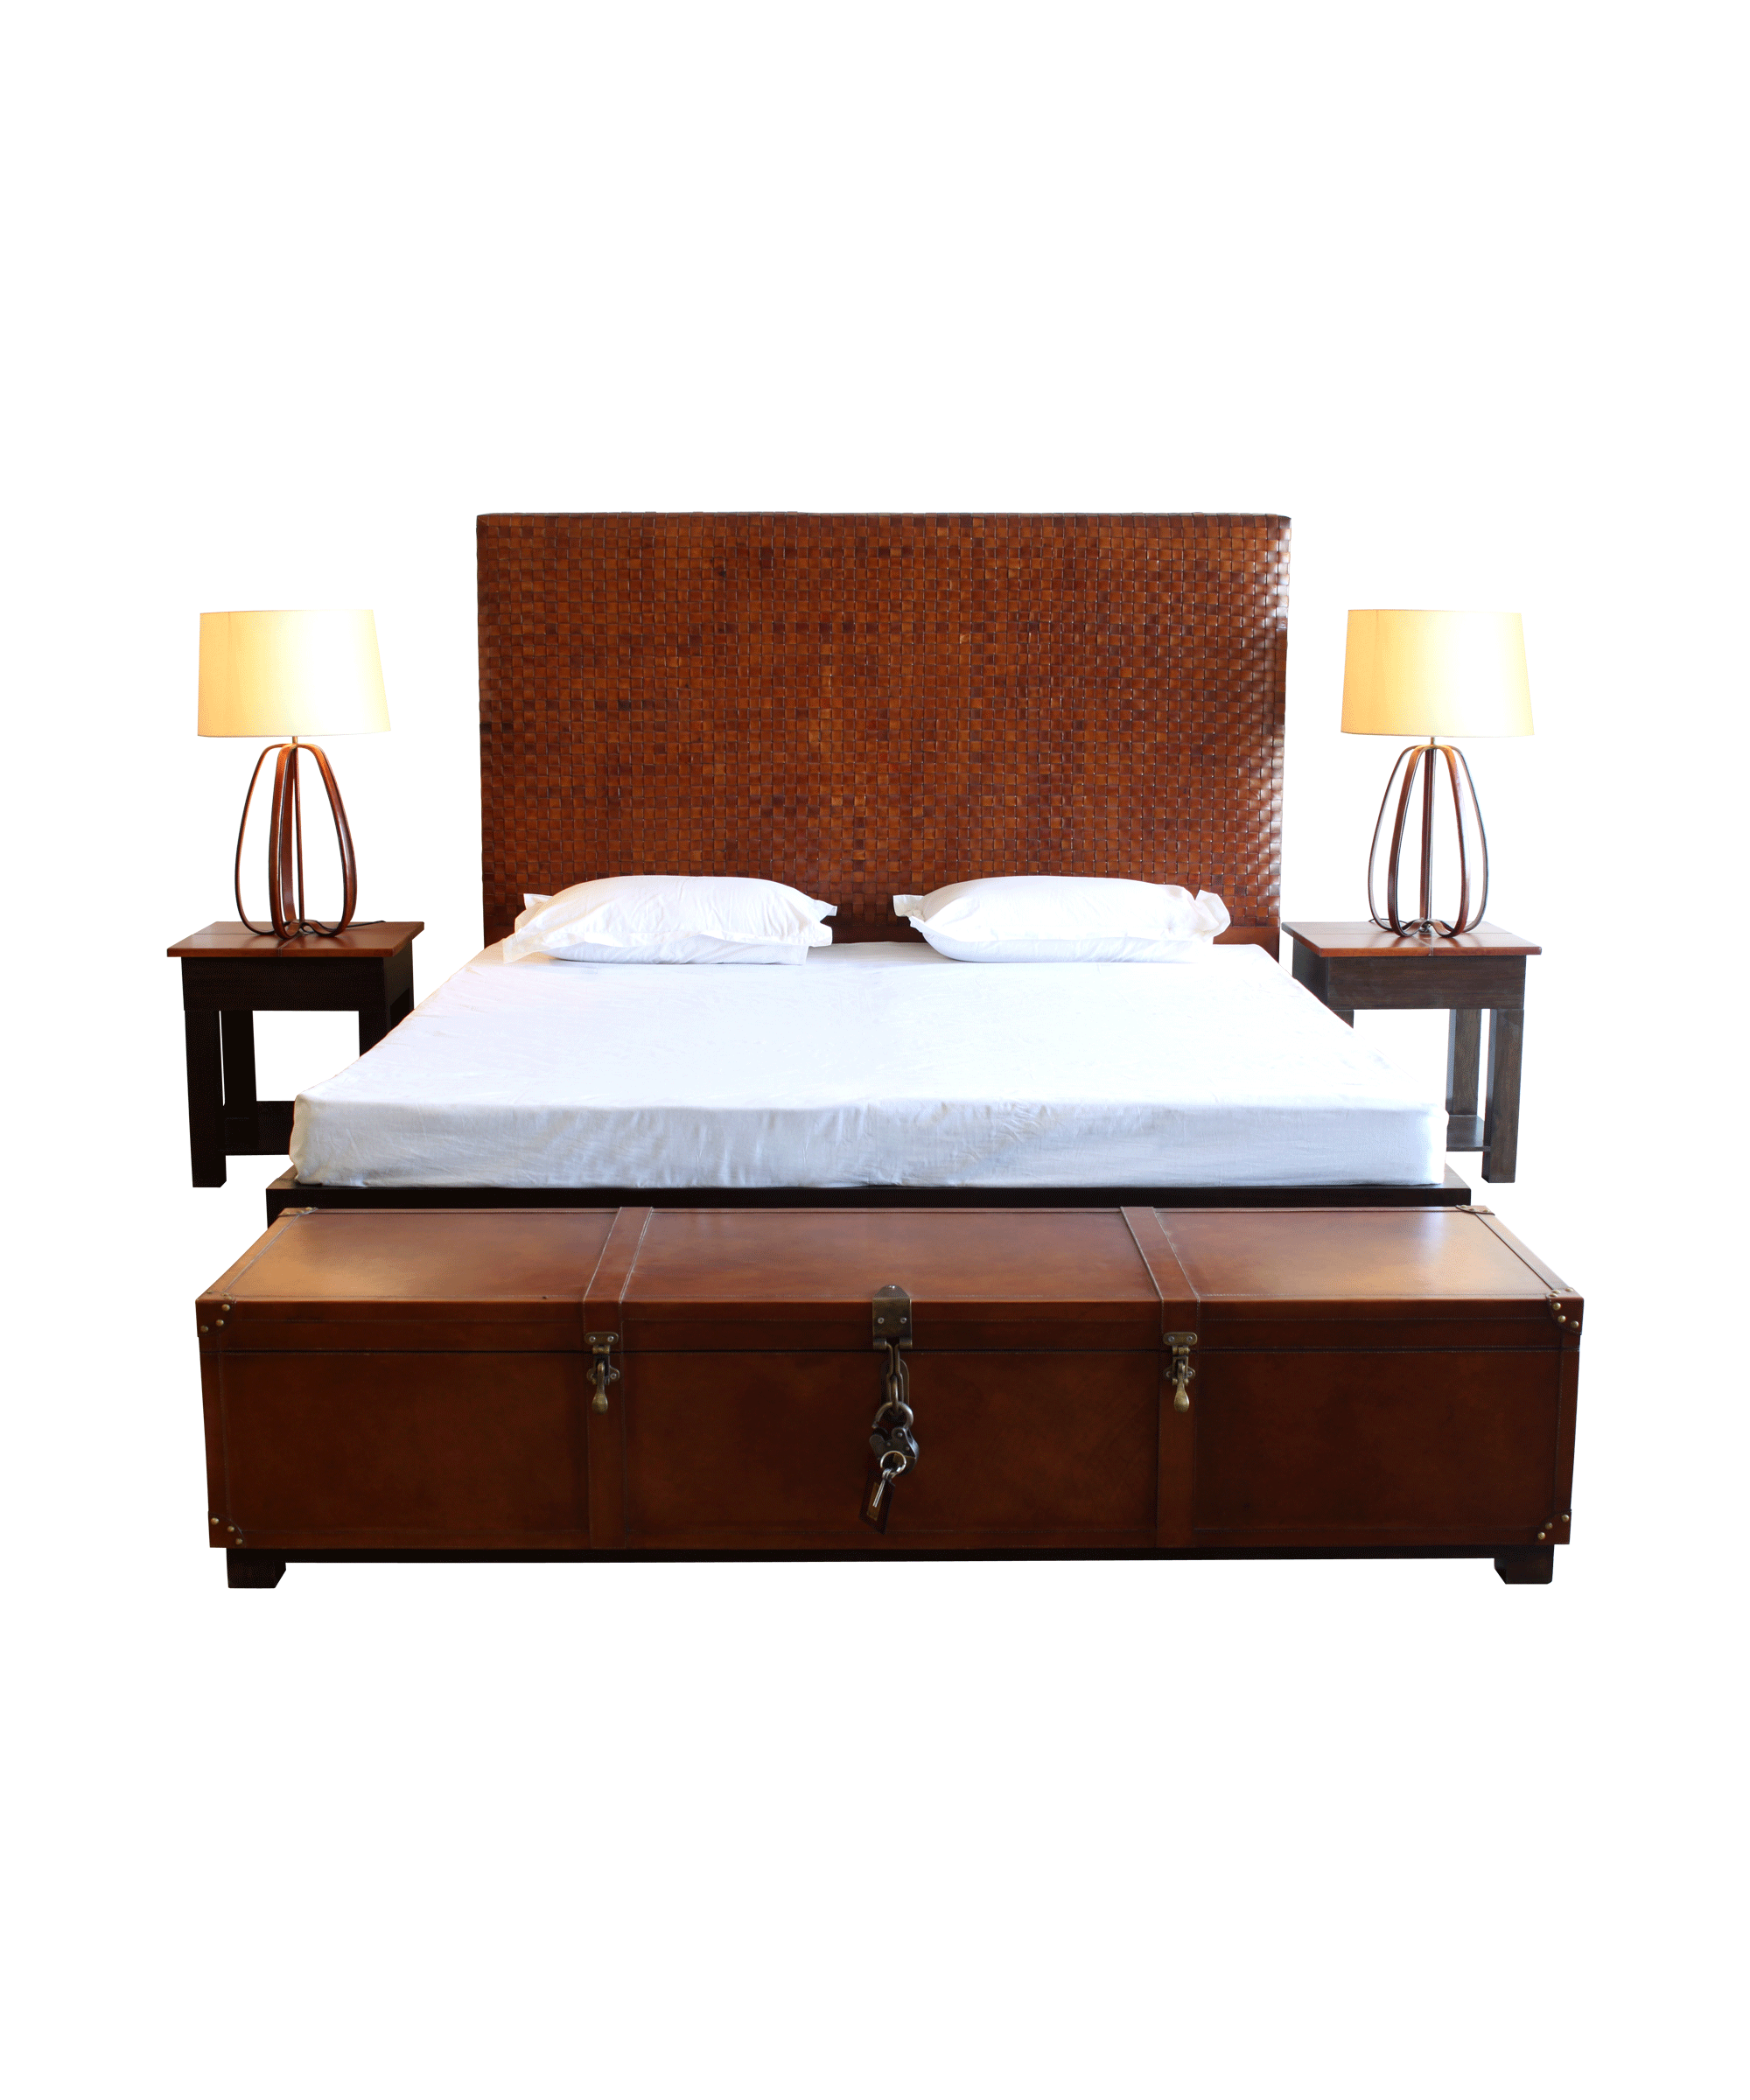 Png images free download. Bed clipart double bed